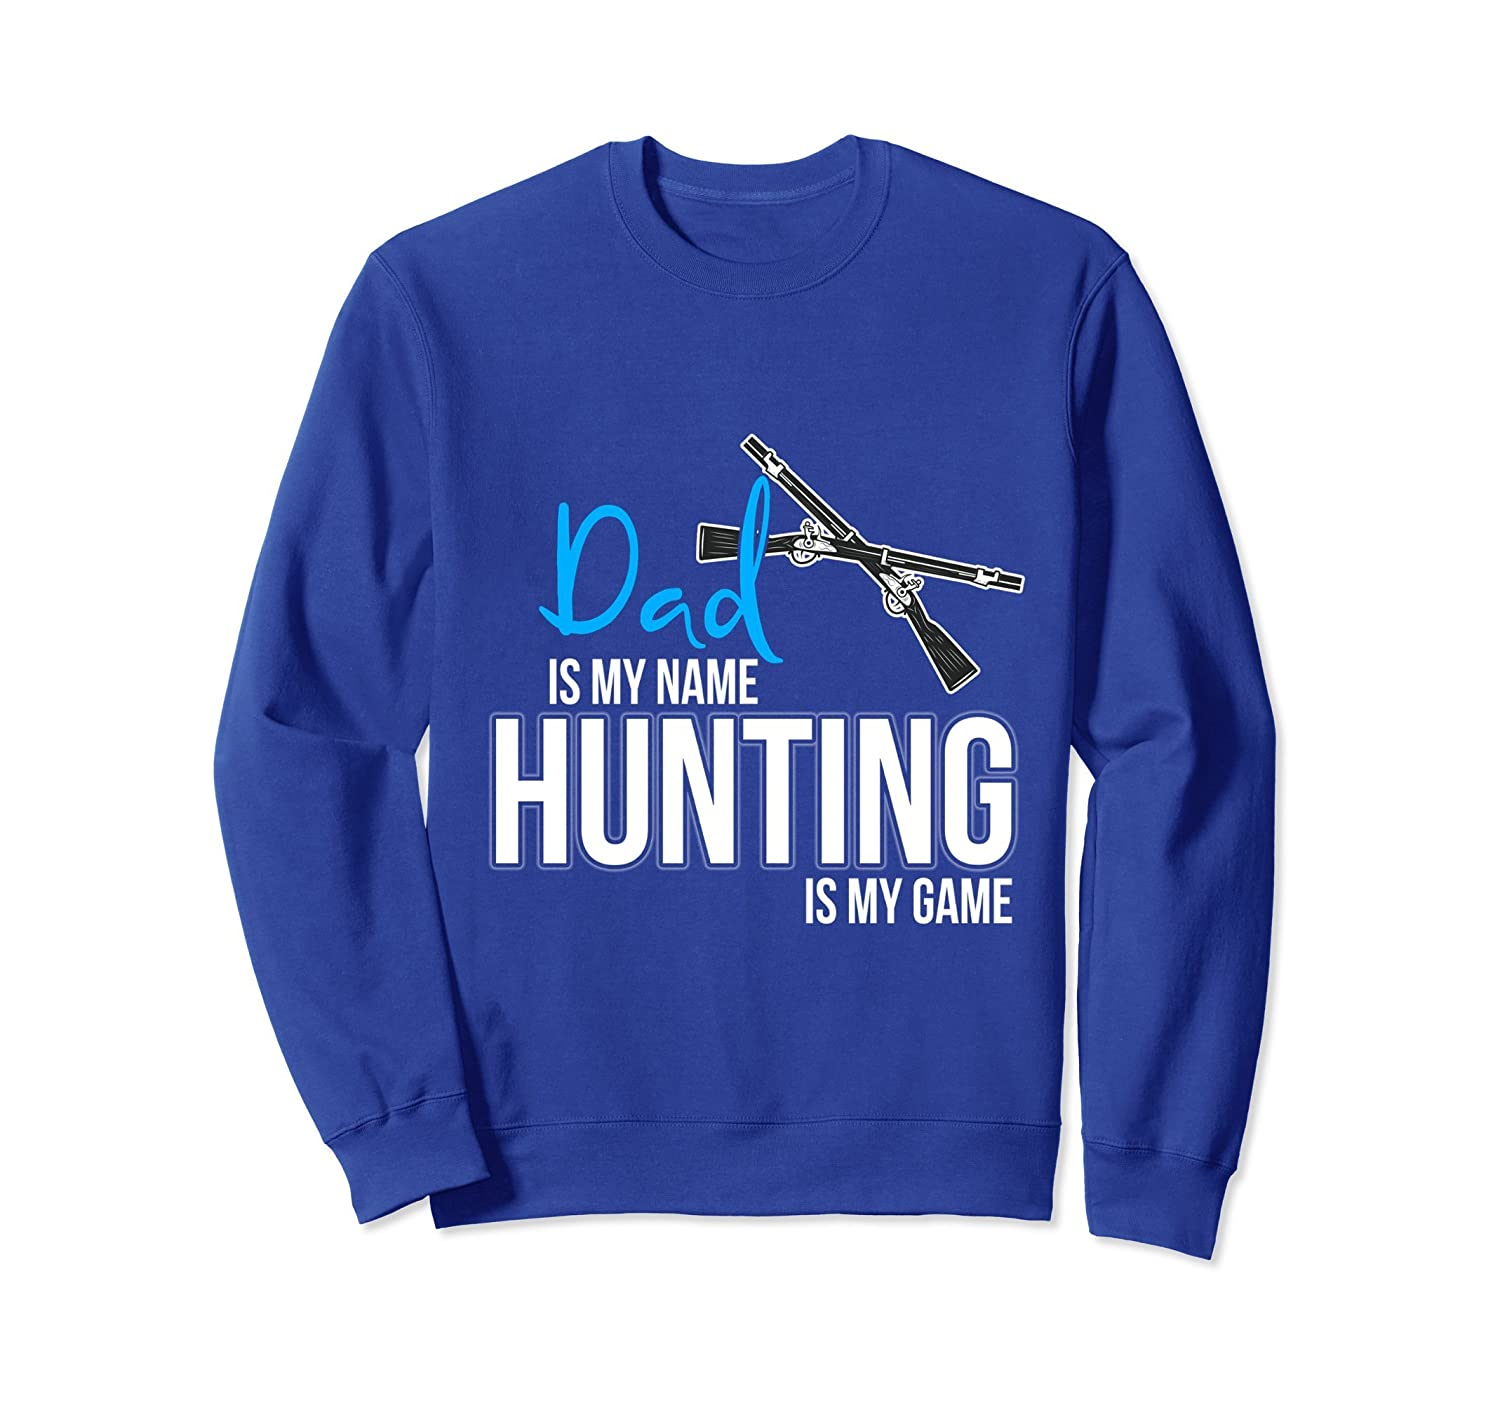 Dad is my Name Hunting is my Game Sweatshirt-ah my shirt one gift